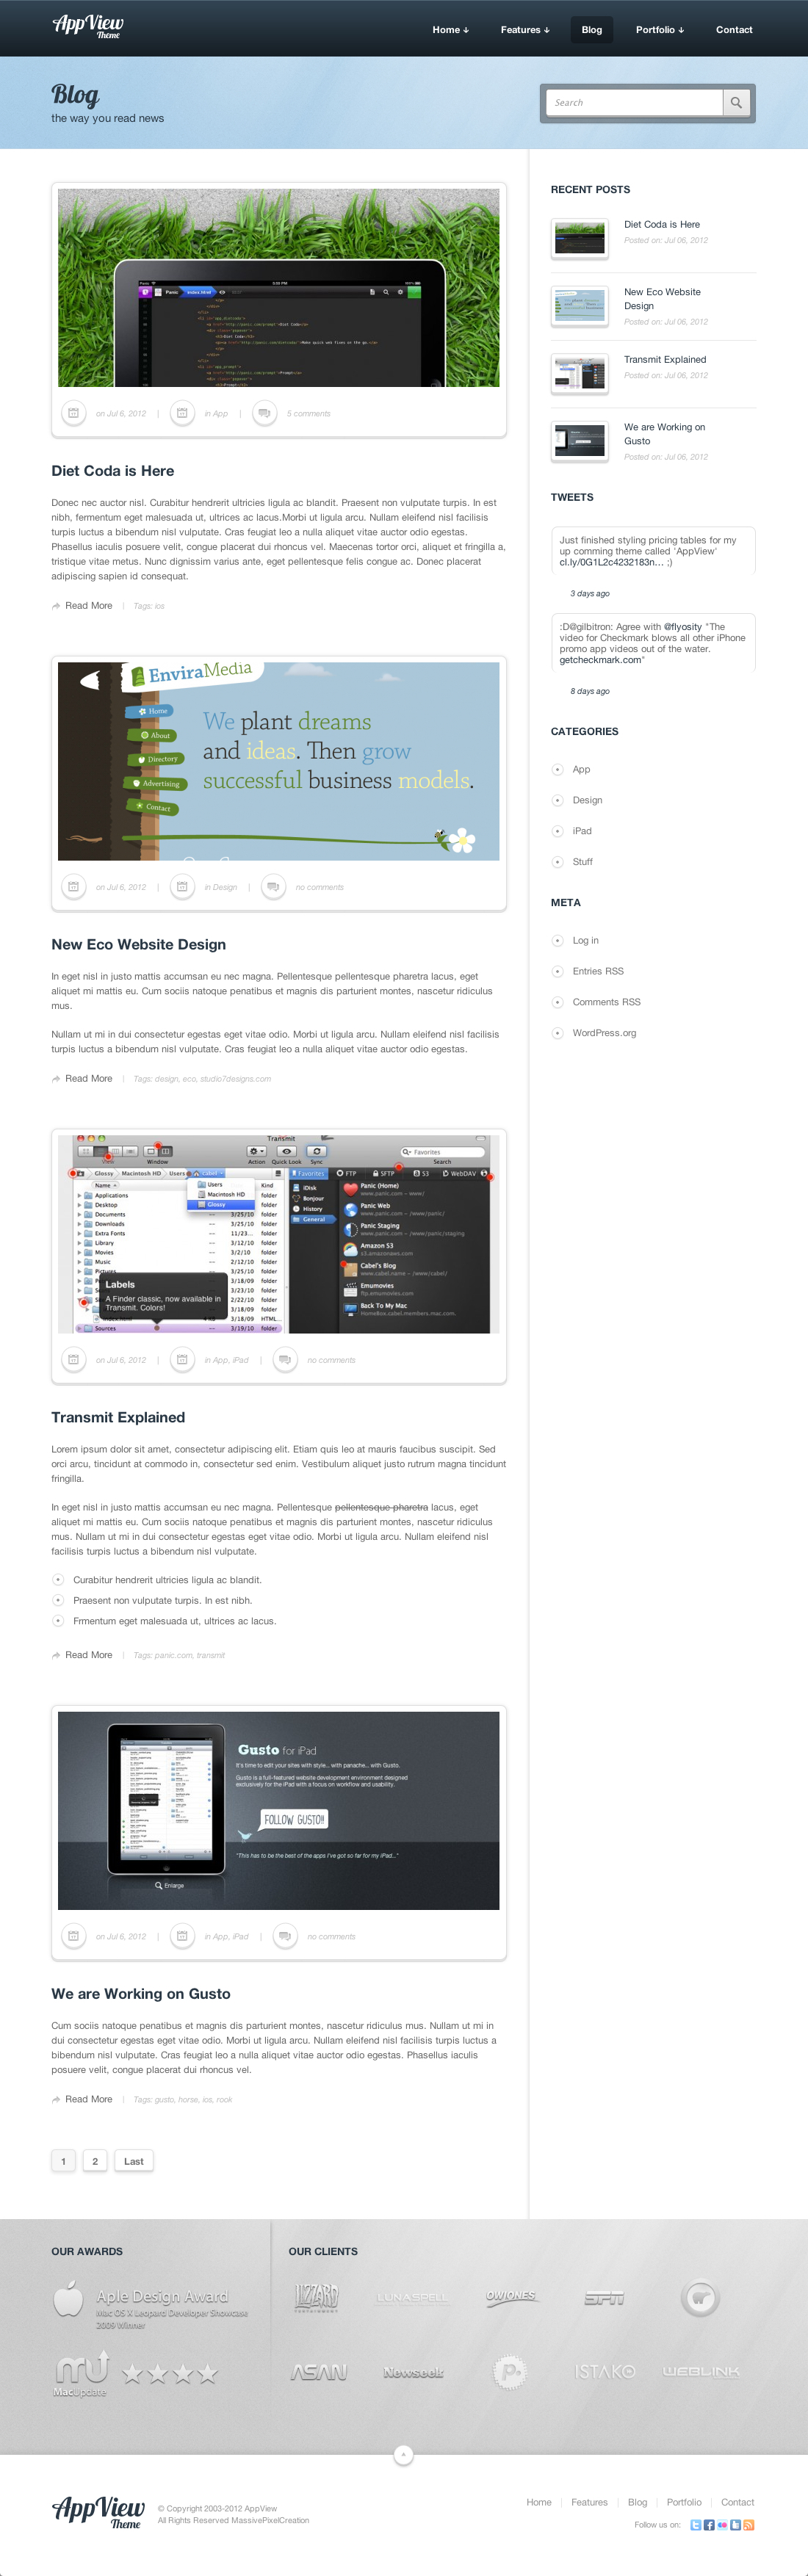 AppView Professional Portfolio WordPress Theme - Screenshot 1 - Blog